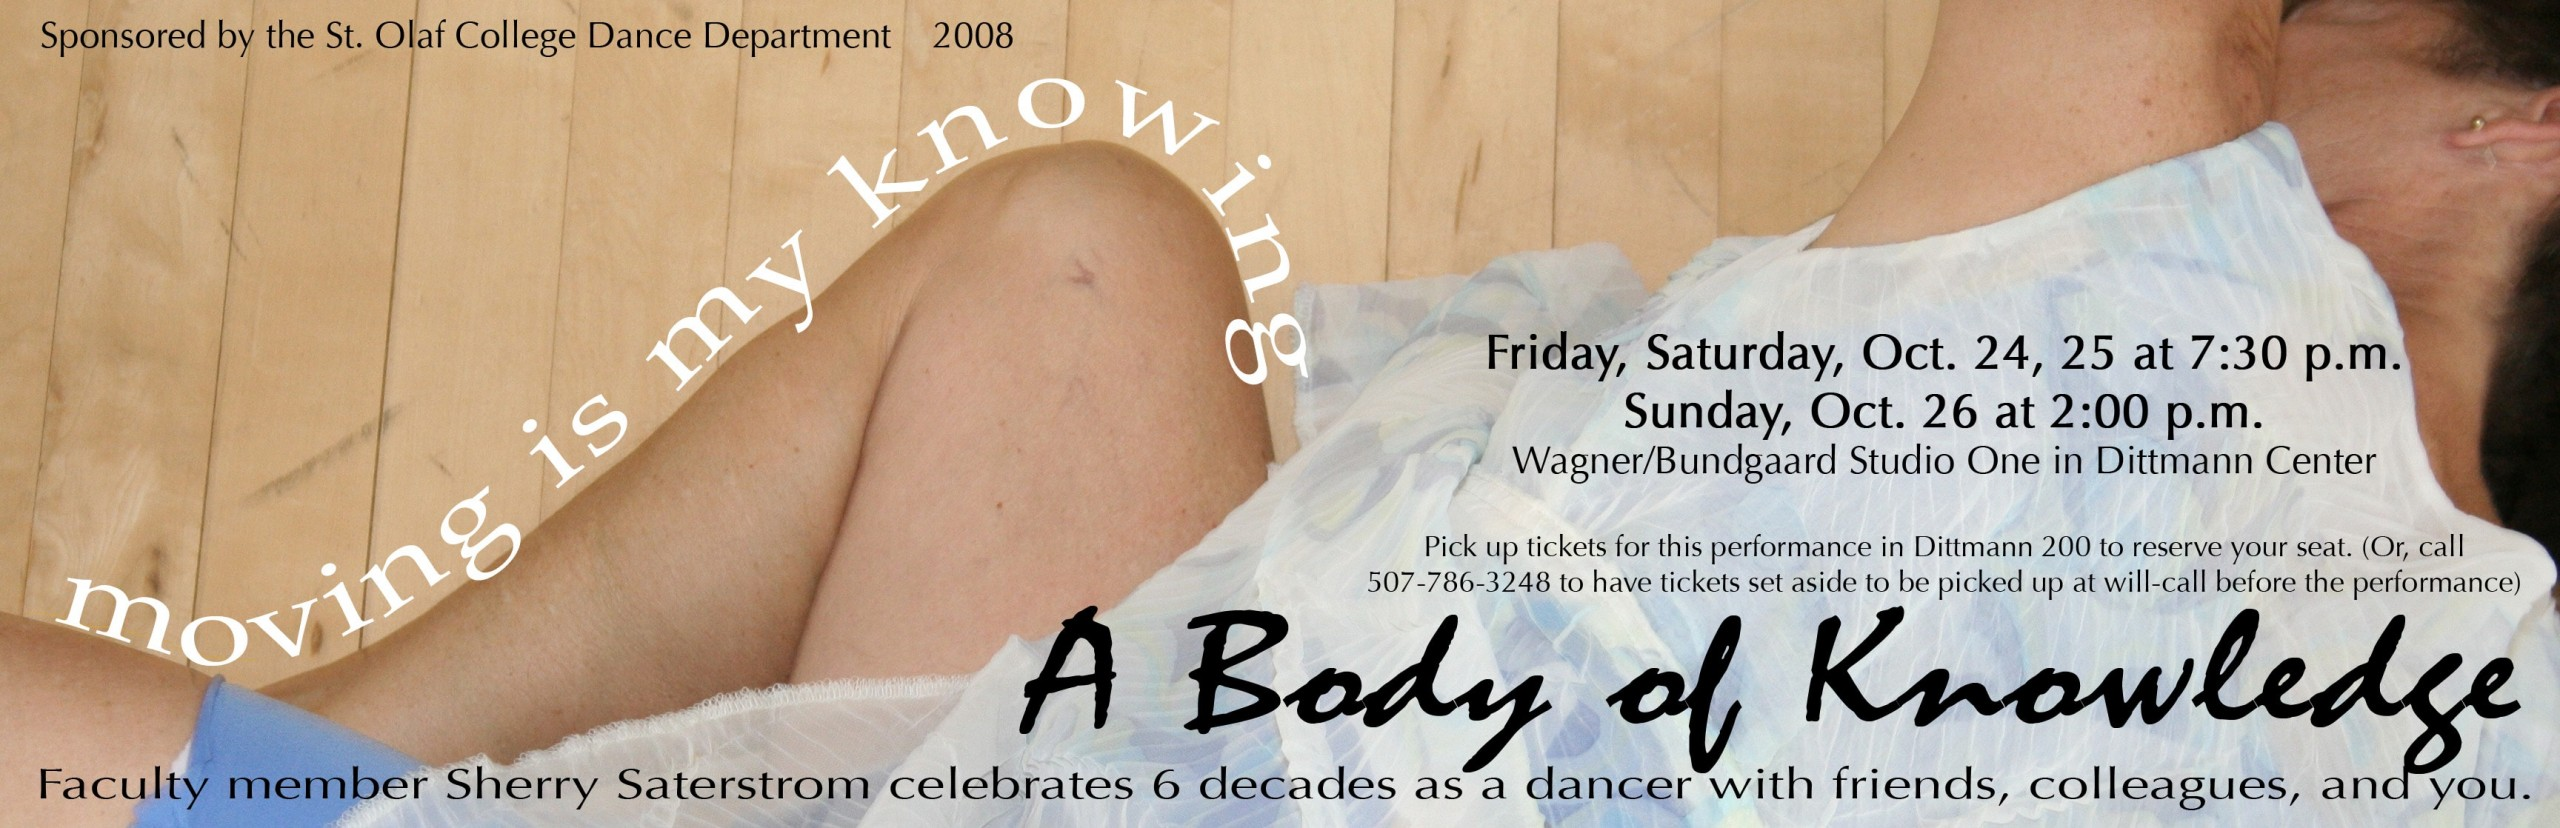 2008-09_dance_faculty_Body of Know. Posters-min